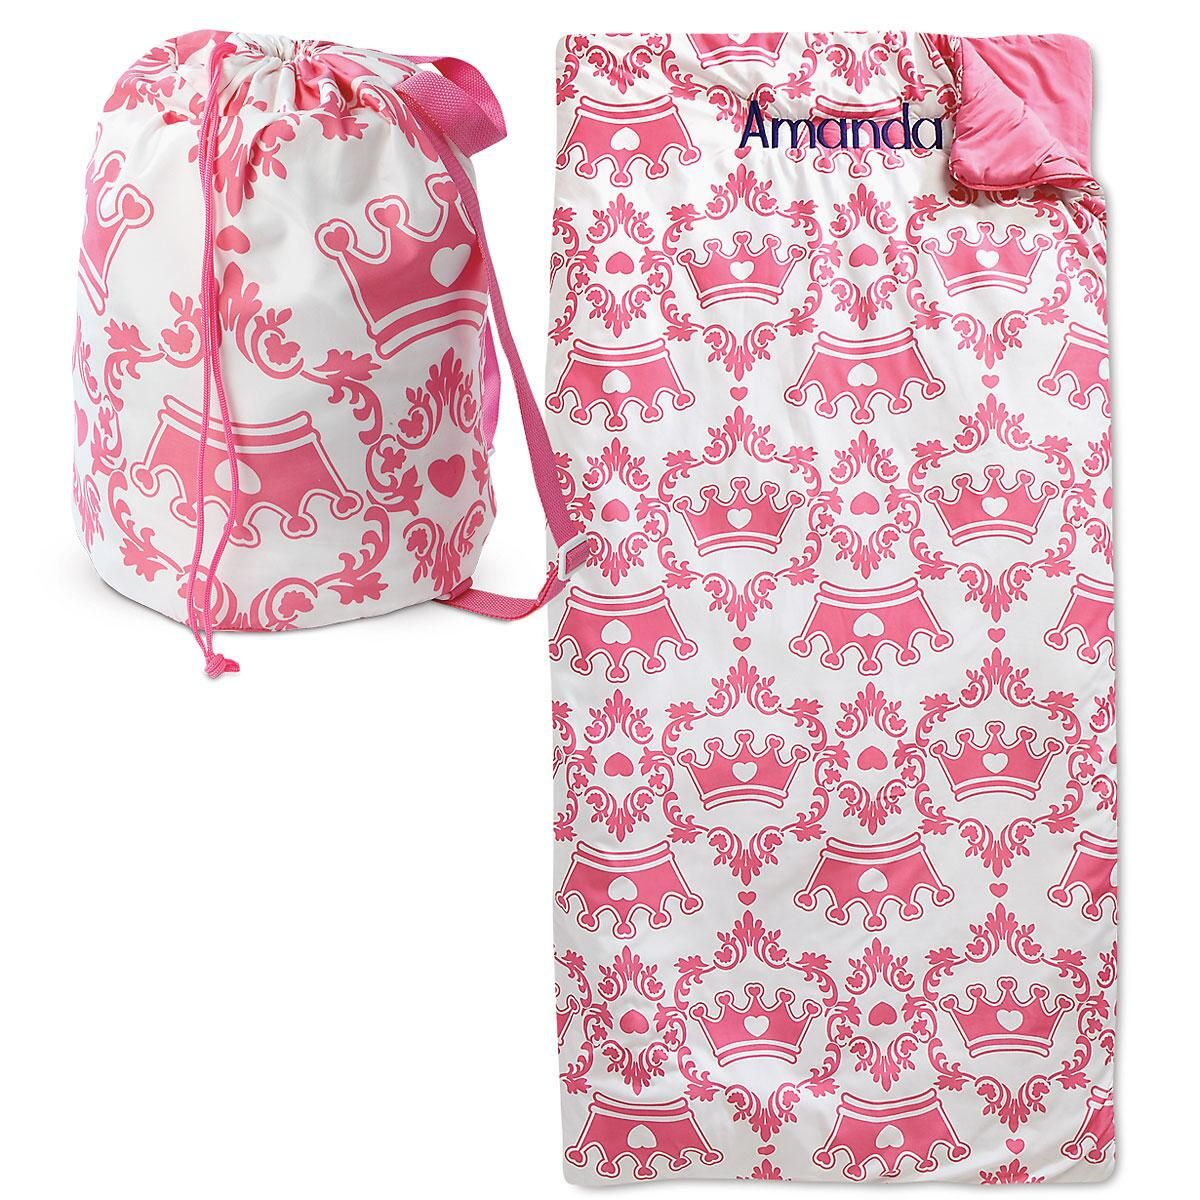 Princess Microfiber Sleeping Bag